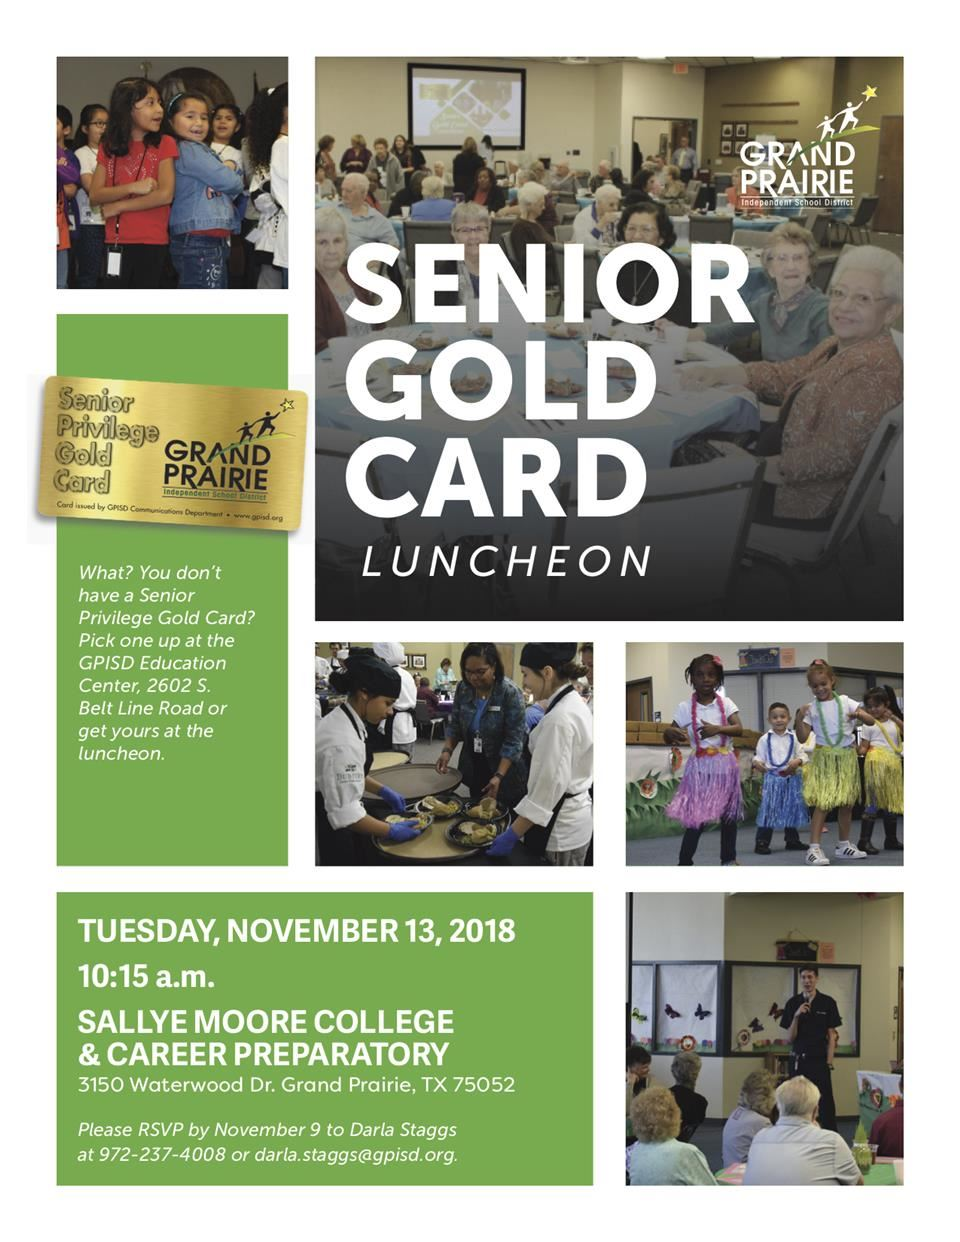 2018 Fall Senior Gold Card Luncheon flyer - information also placed on webpage - decorative